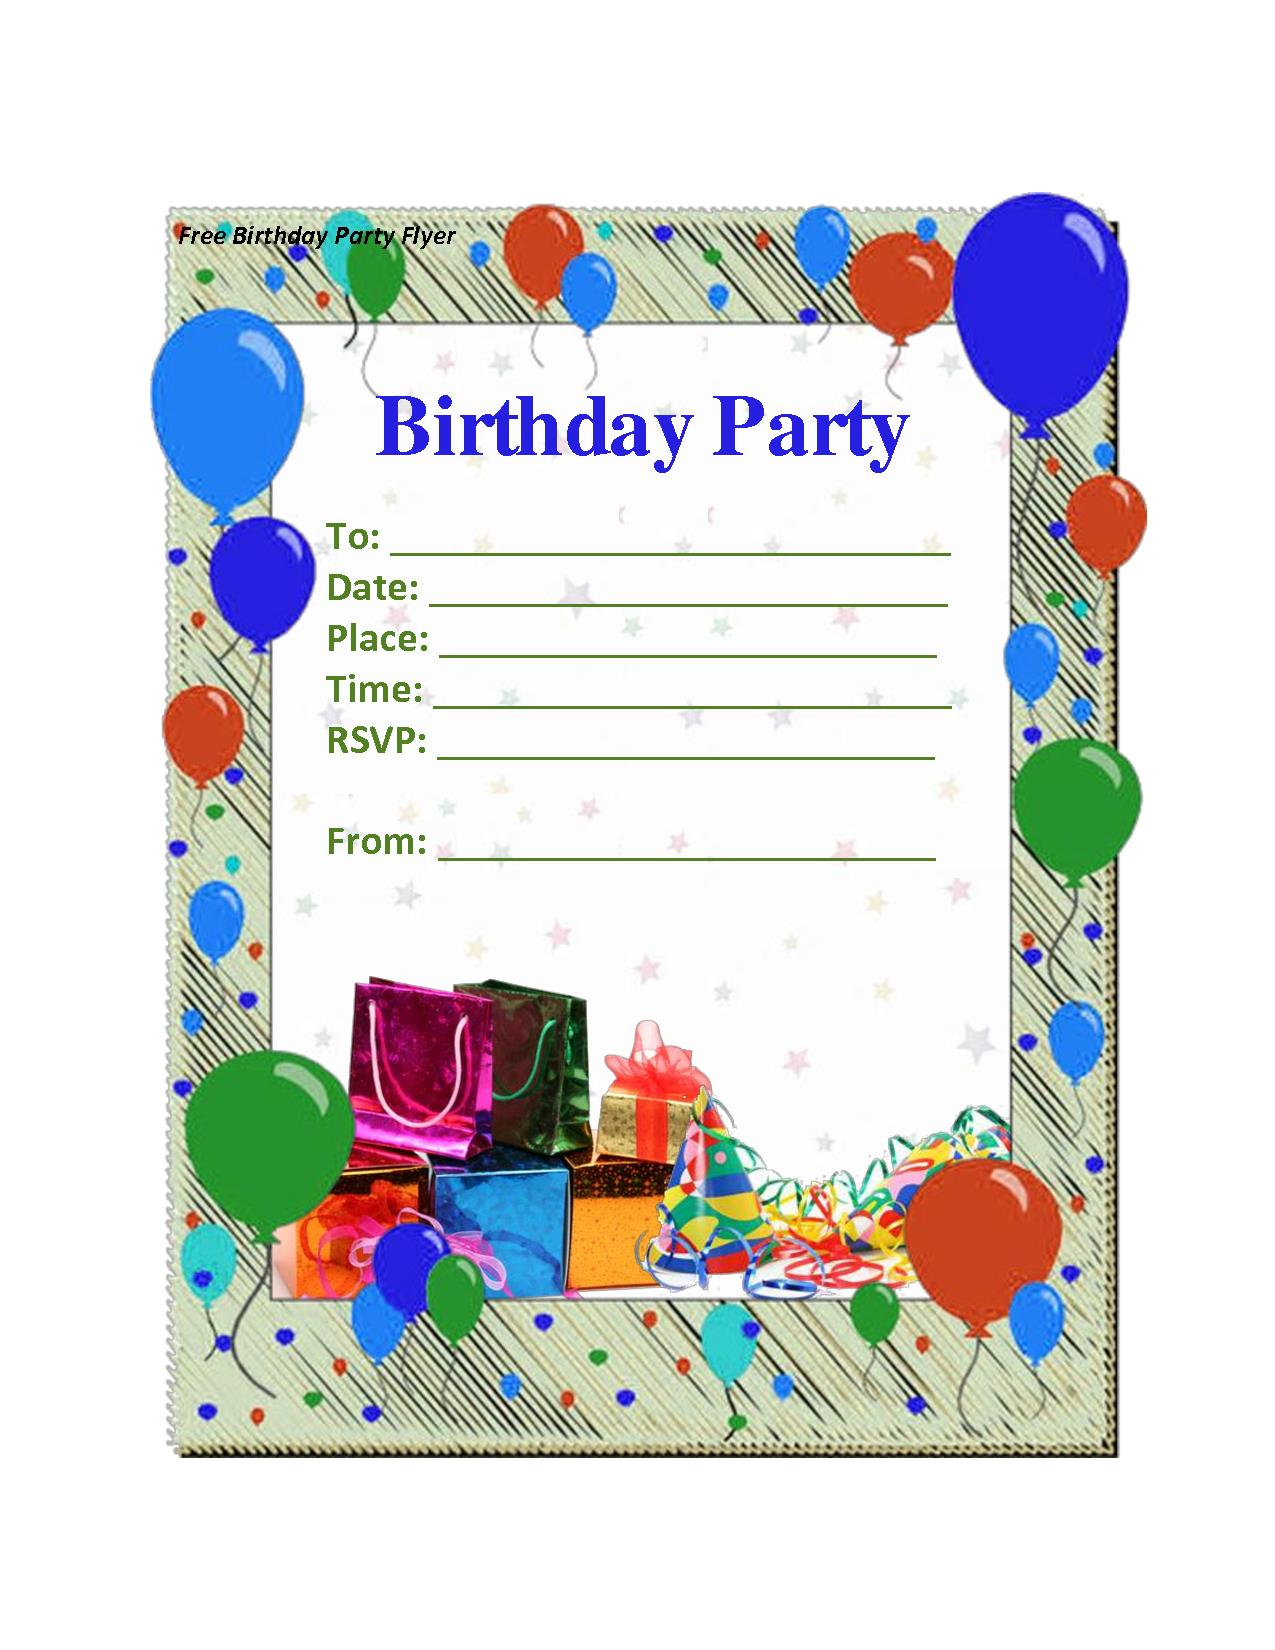 free printable birthday invitation templates for boys ; birthday-invitation-templates-With-the-model-Birthday-attractive-ideas-13